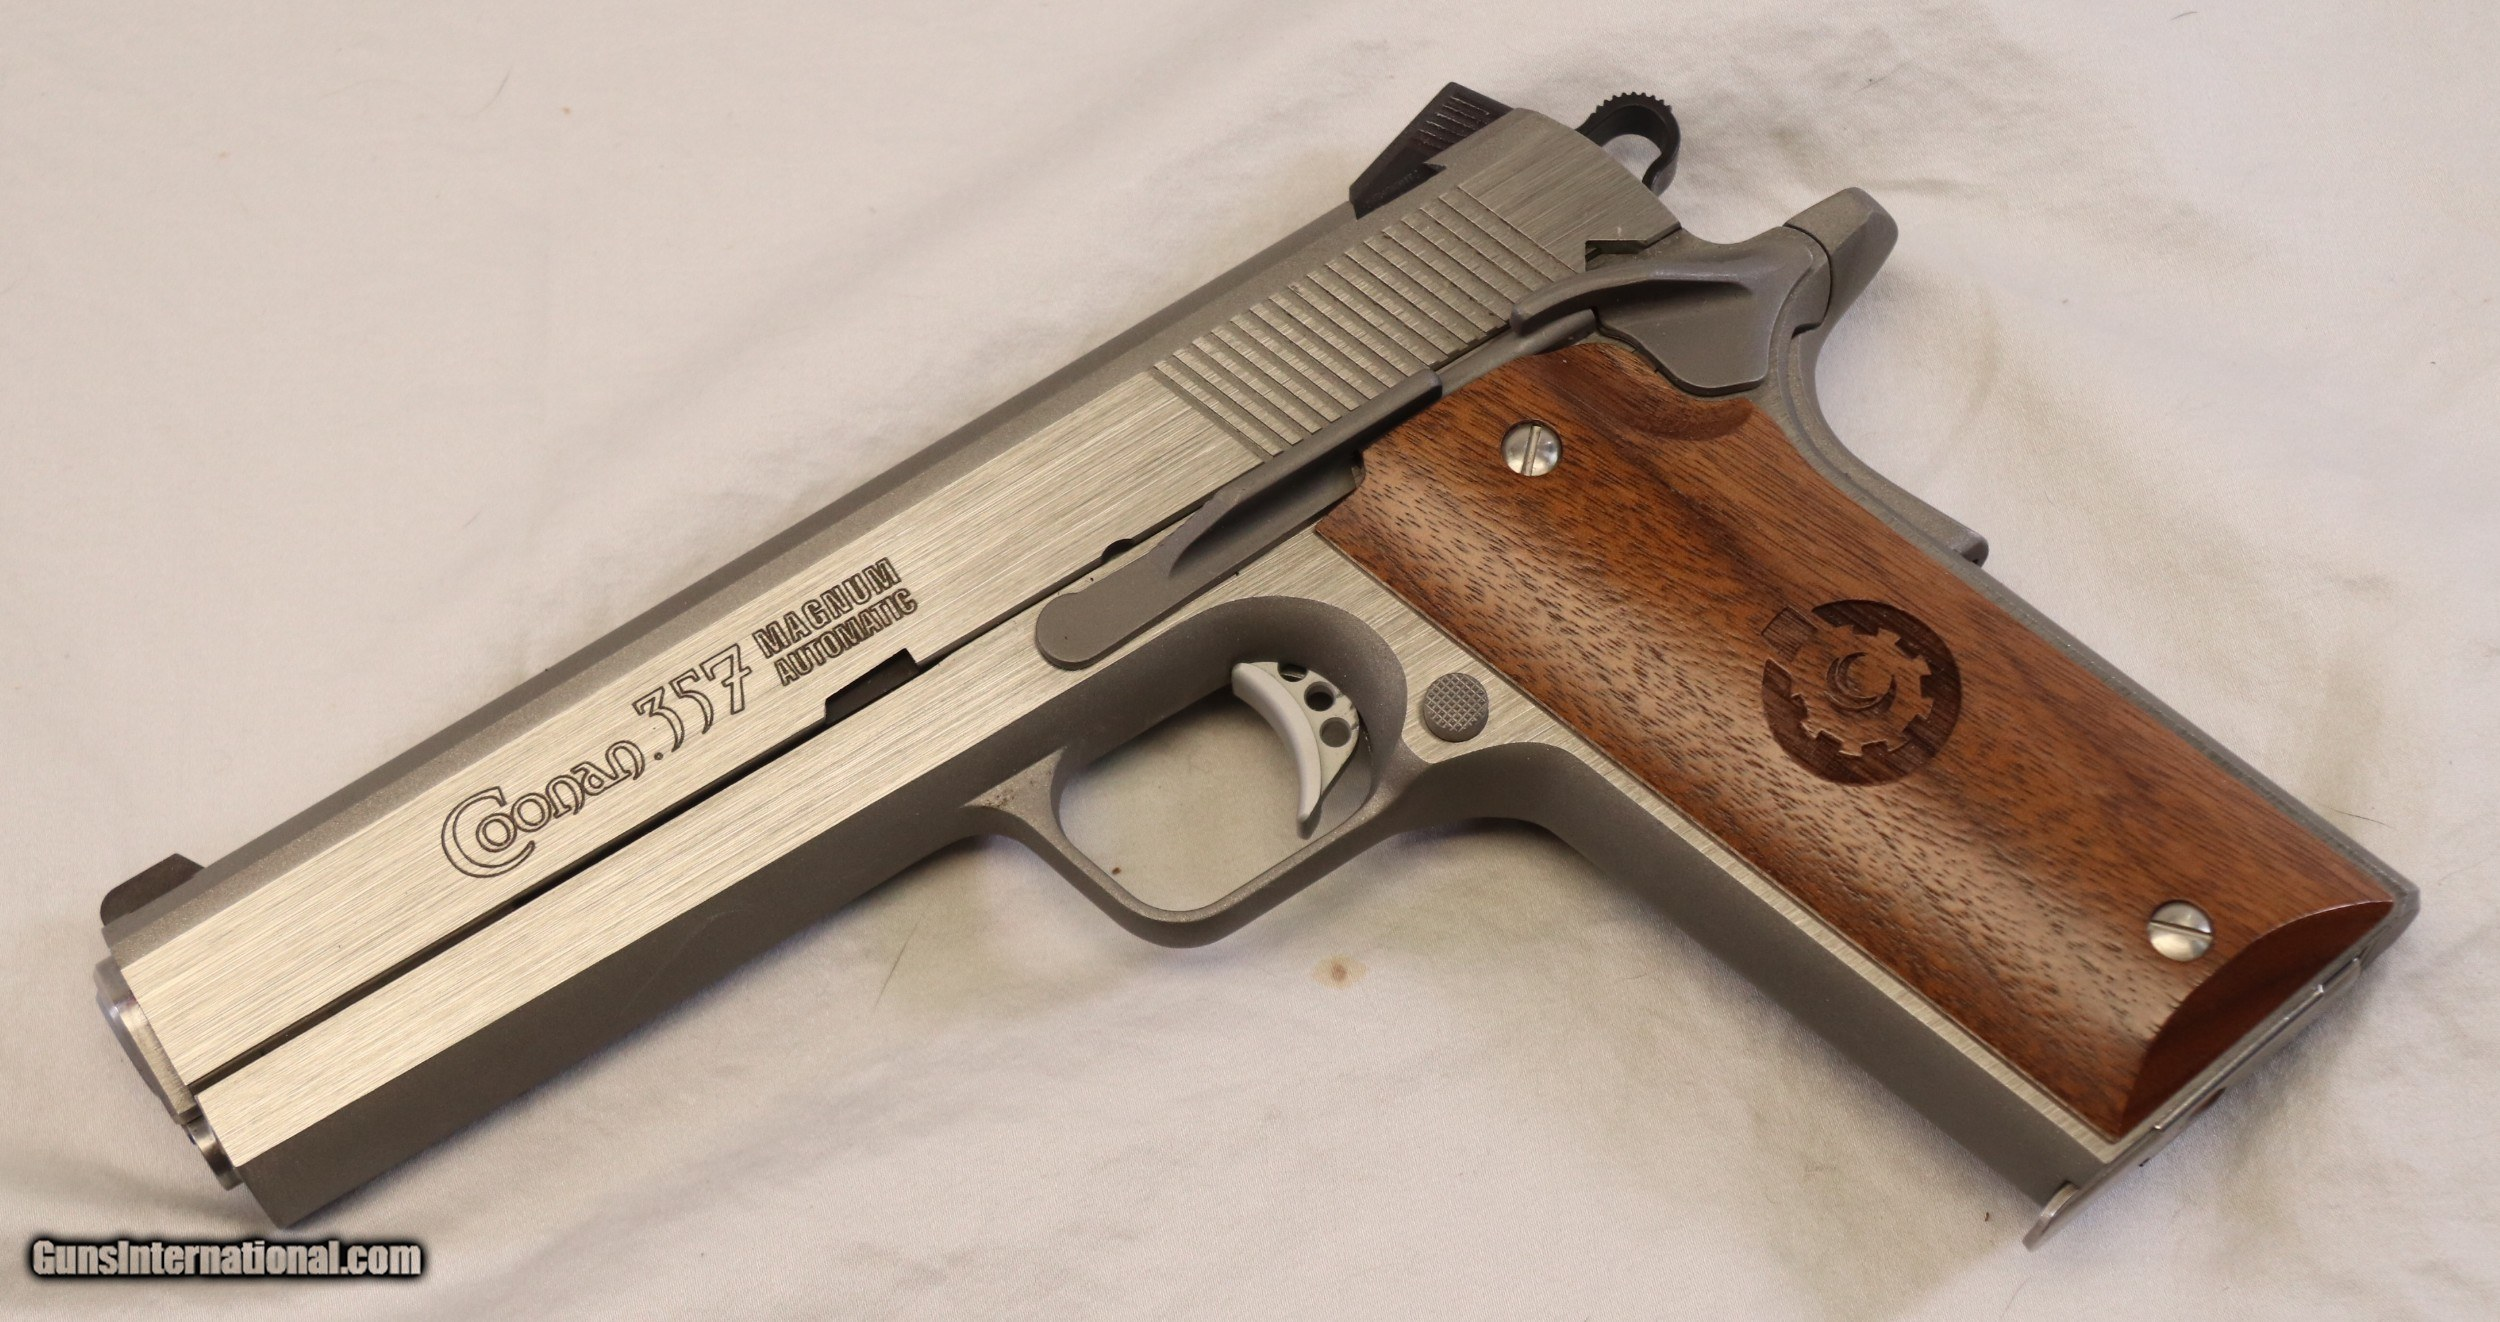 Coonan Classic,  357 Magnum Automatic Pistol, NEW in Case